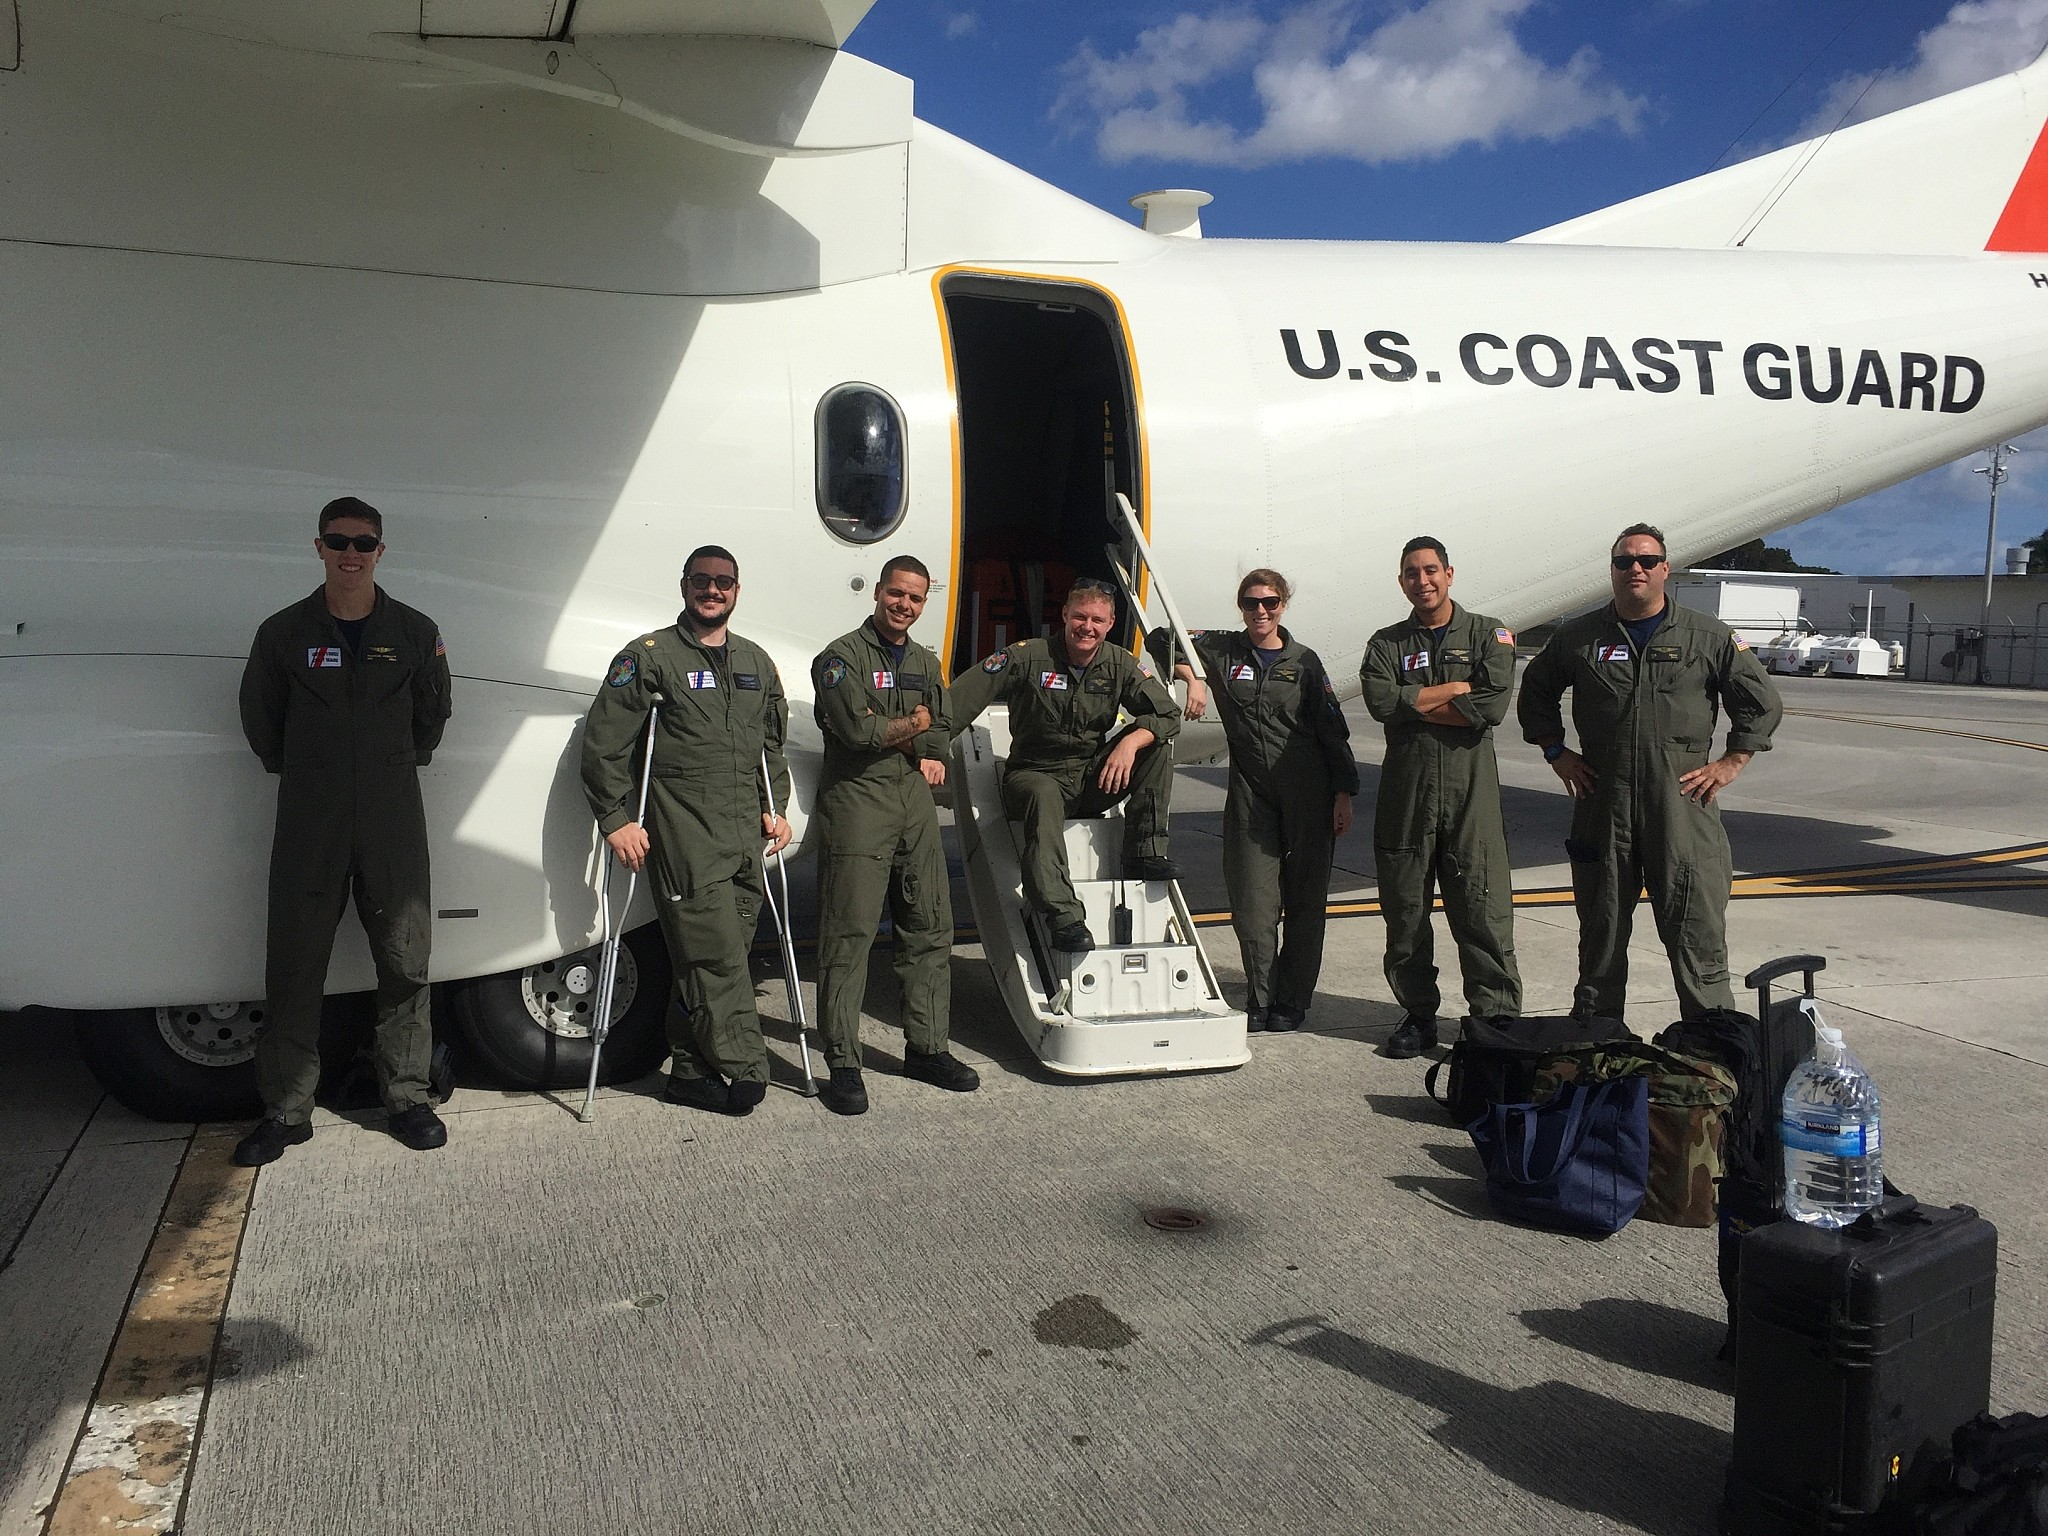 The Jews of the US Coast Guard: 'Always ready' during